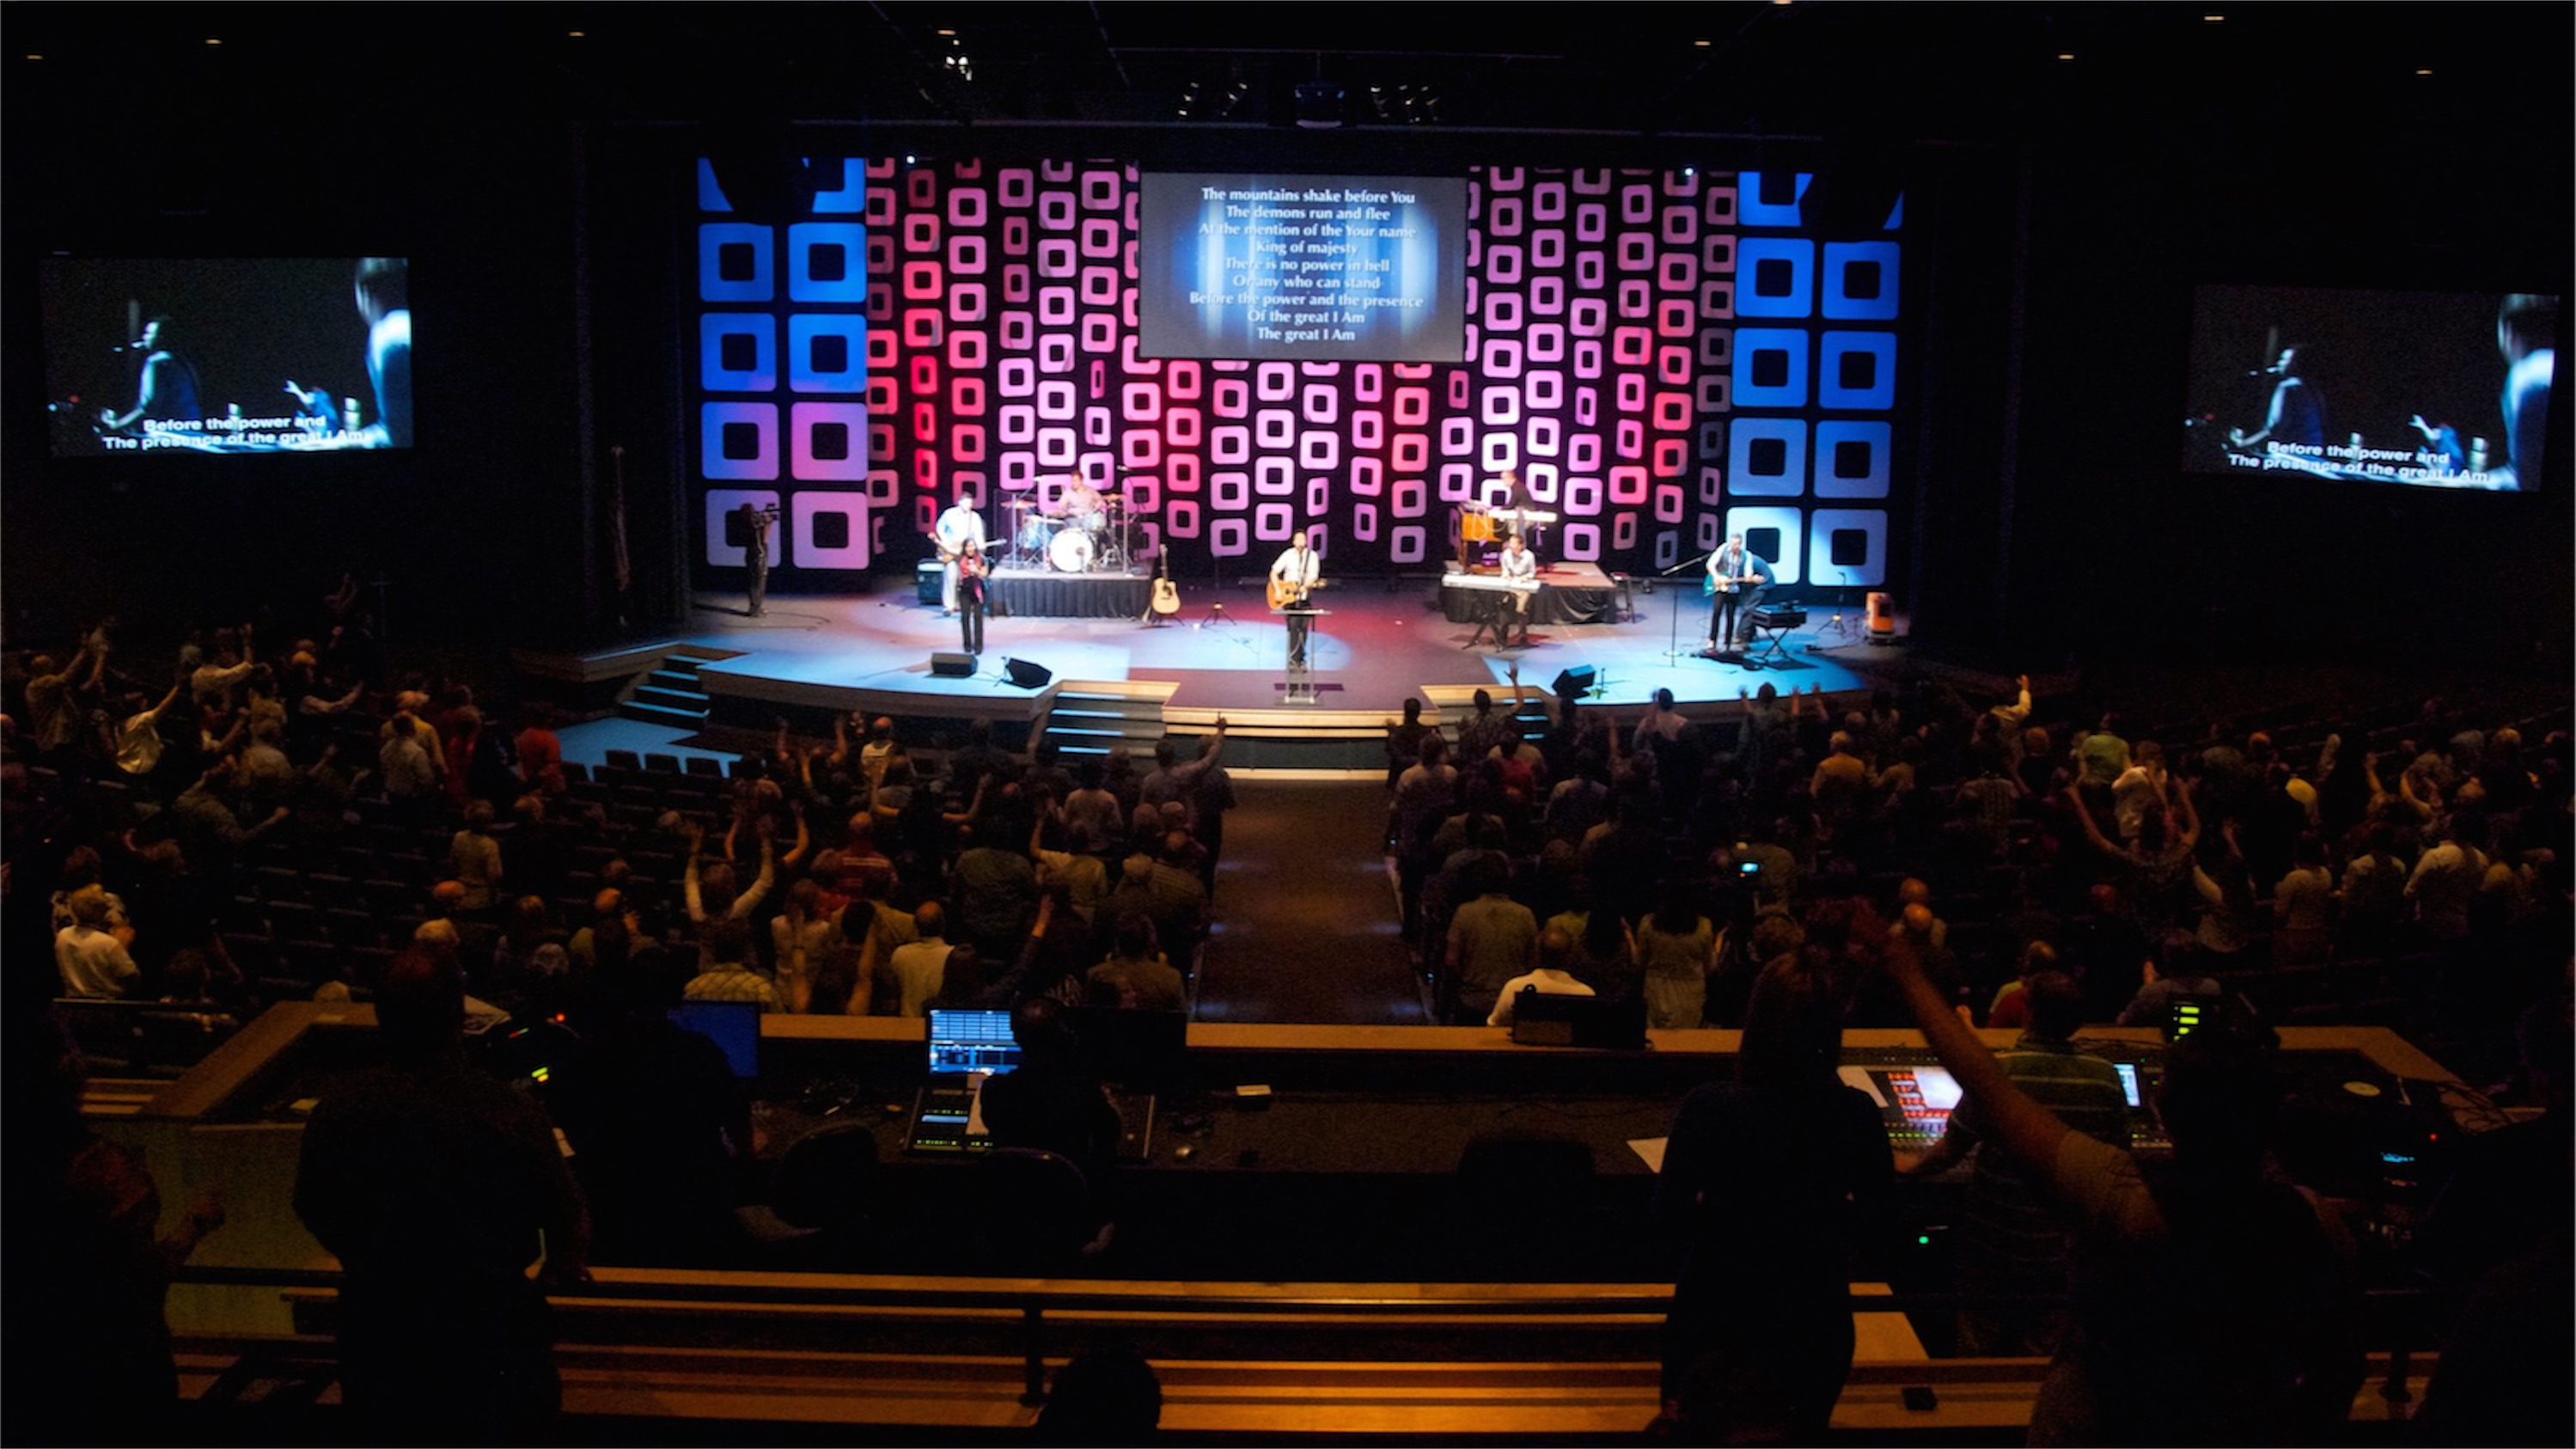 twist and shout church stage design ideas